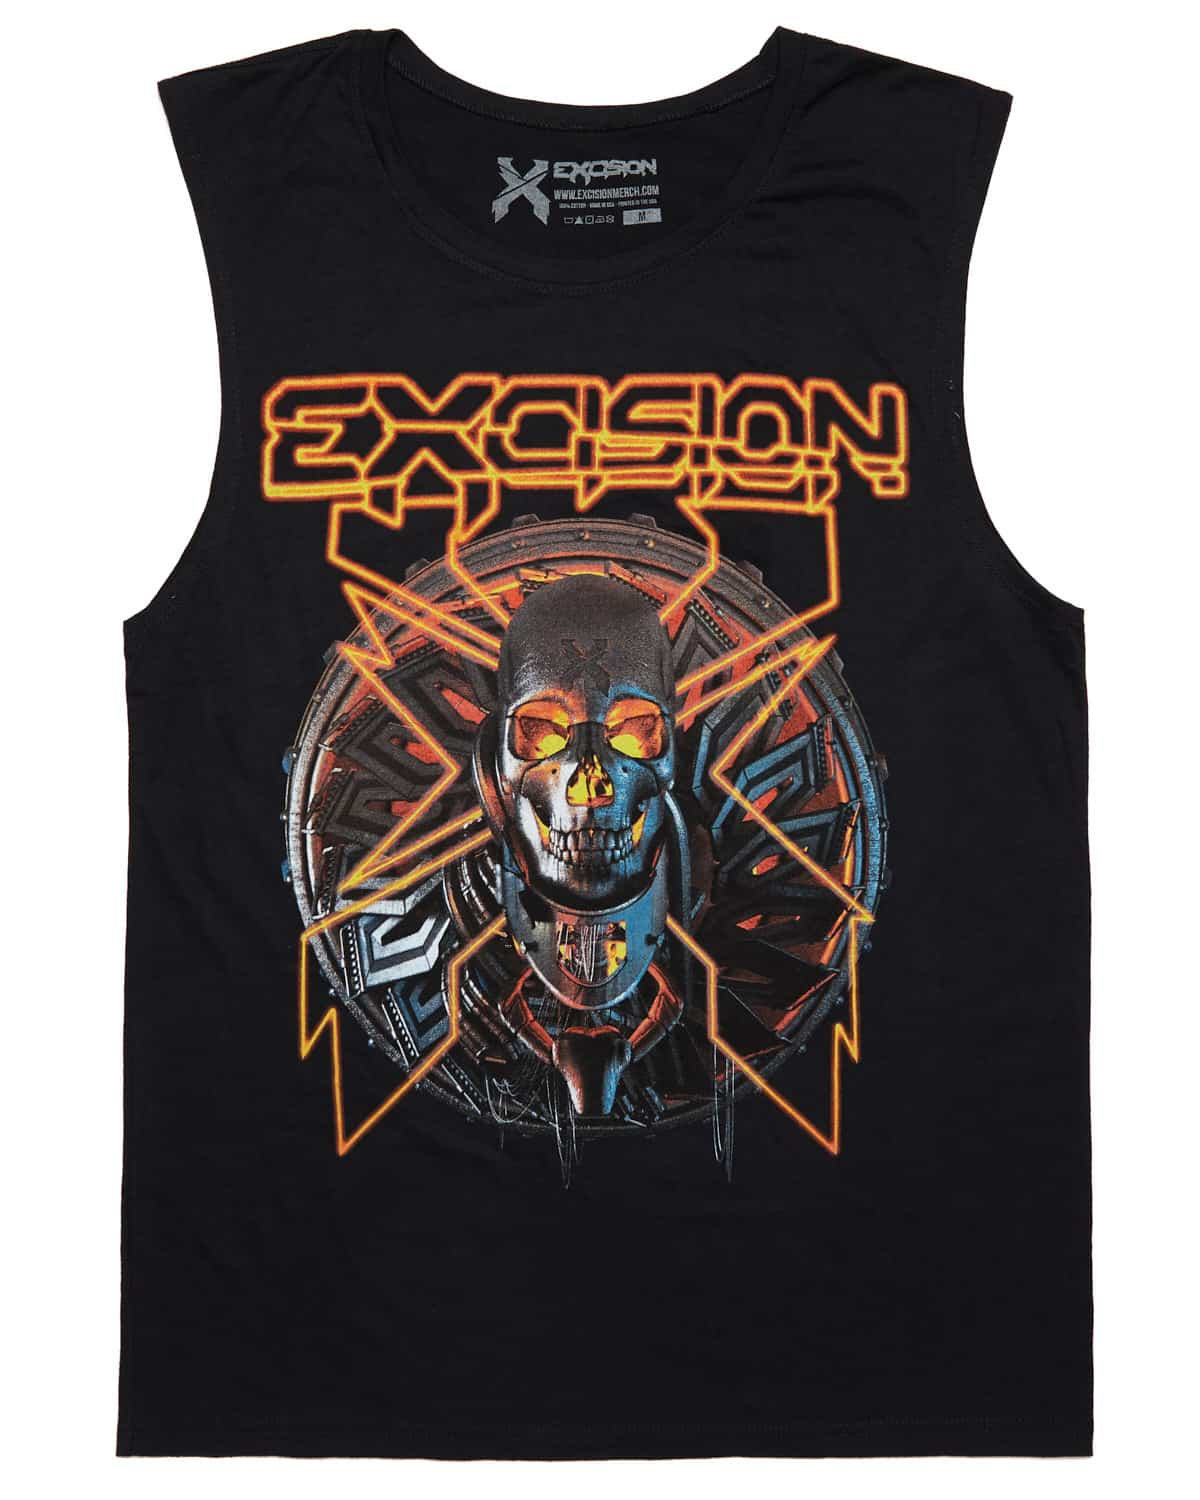 Excision Lazer Skull Unisex Sleeveless T Shirt Red